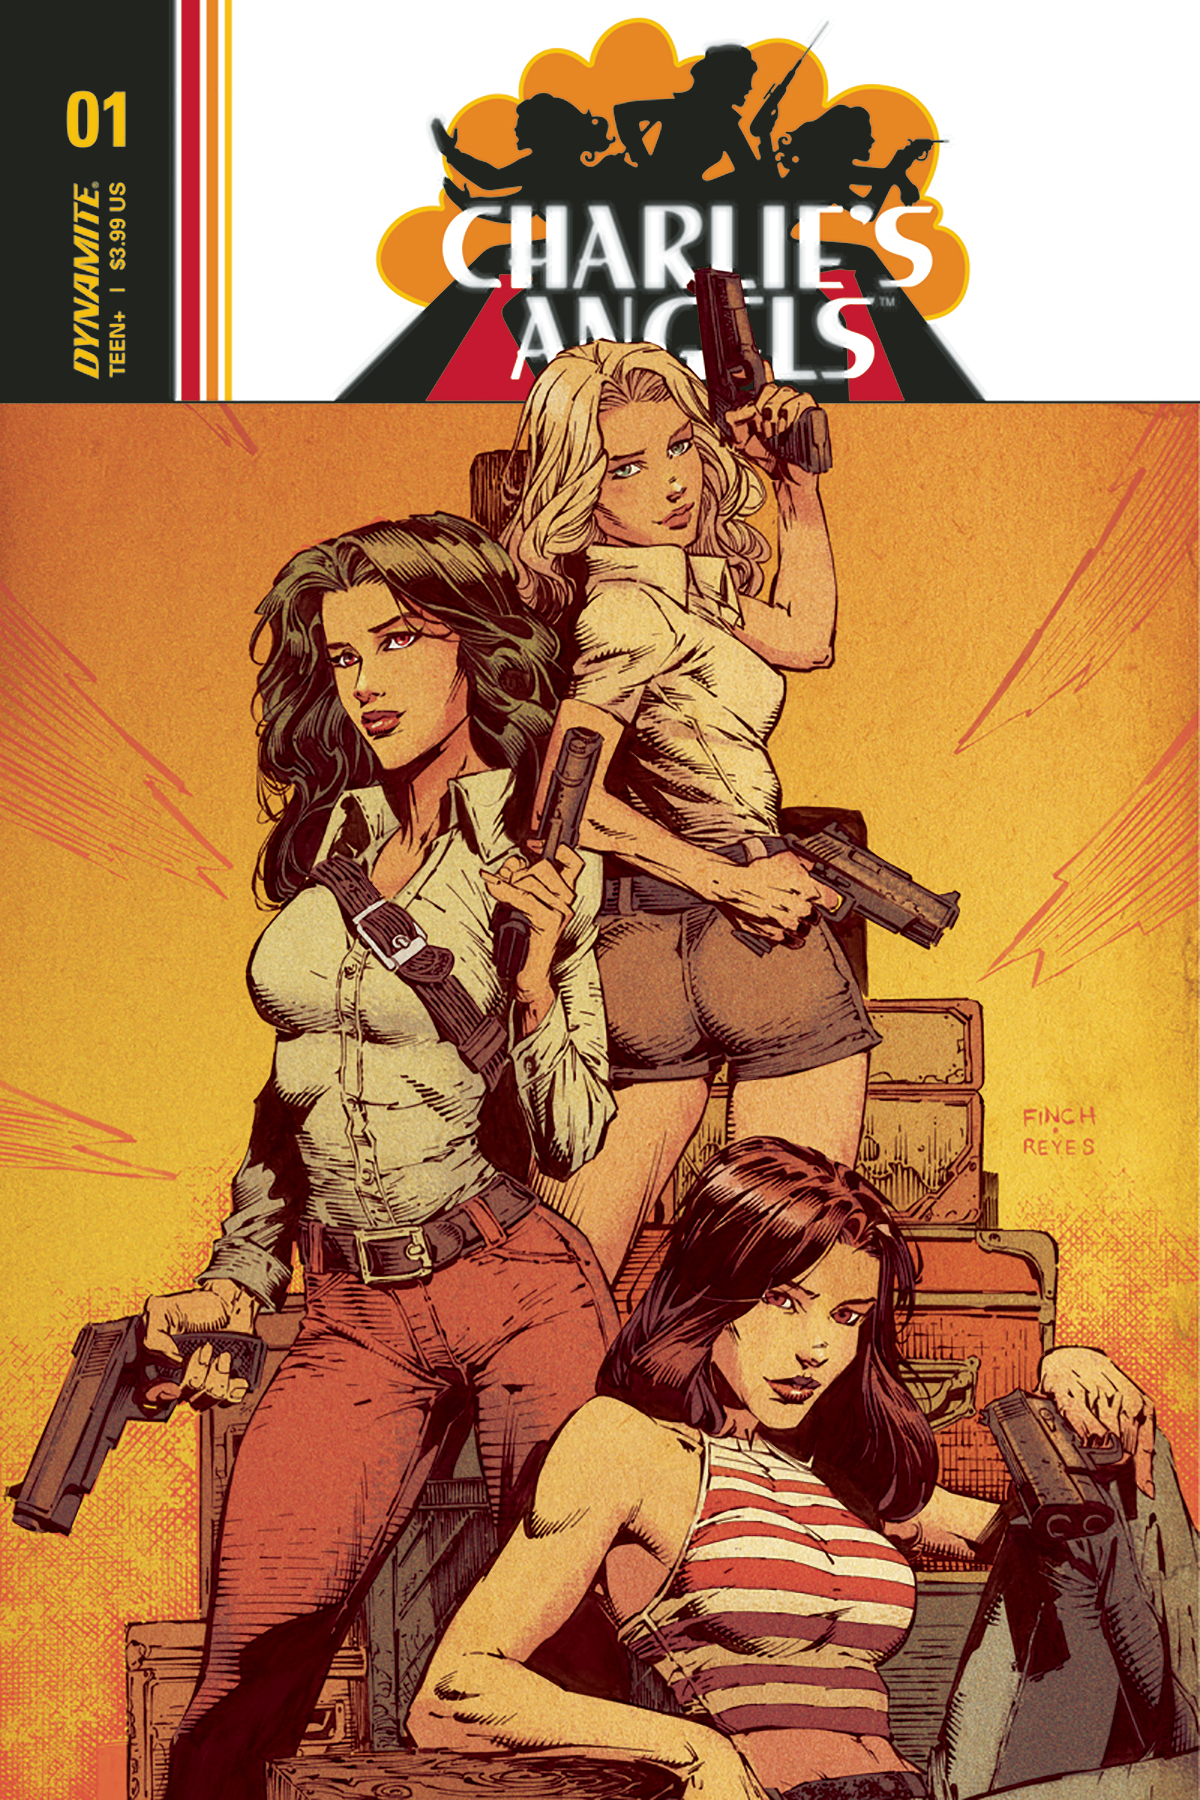 CHARLIES ANGELS #1 CVR A FINCH